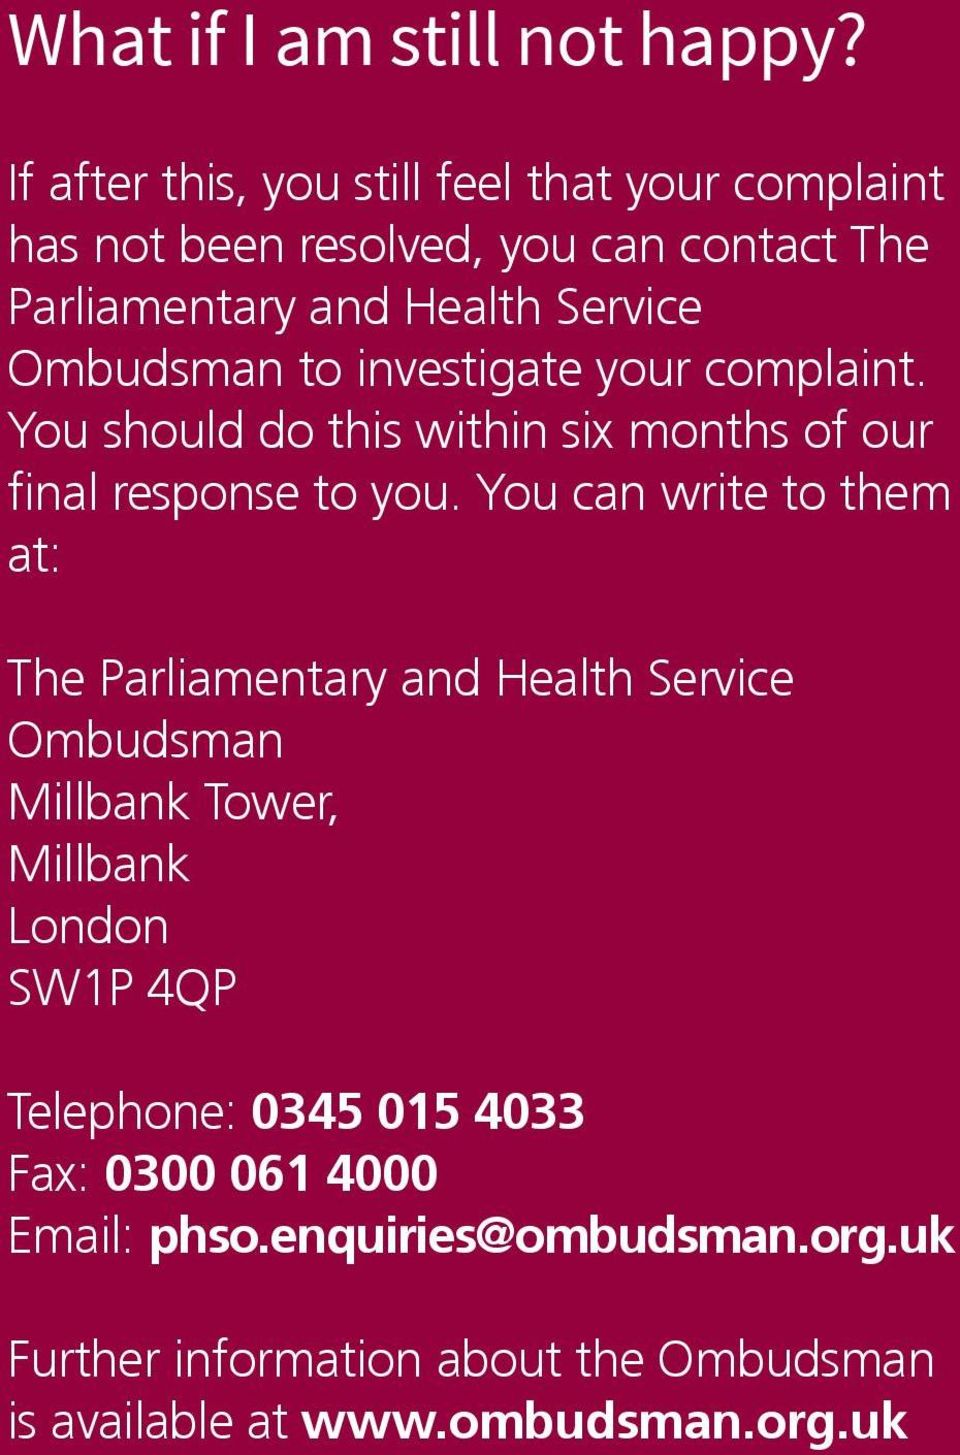 Ombudsman to investigate your complaint. You should do this within six months of our final response to you.